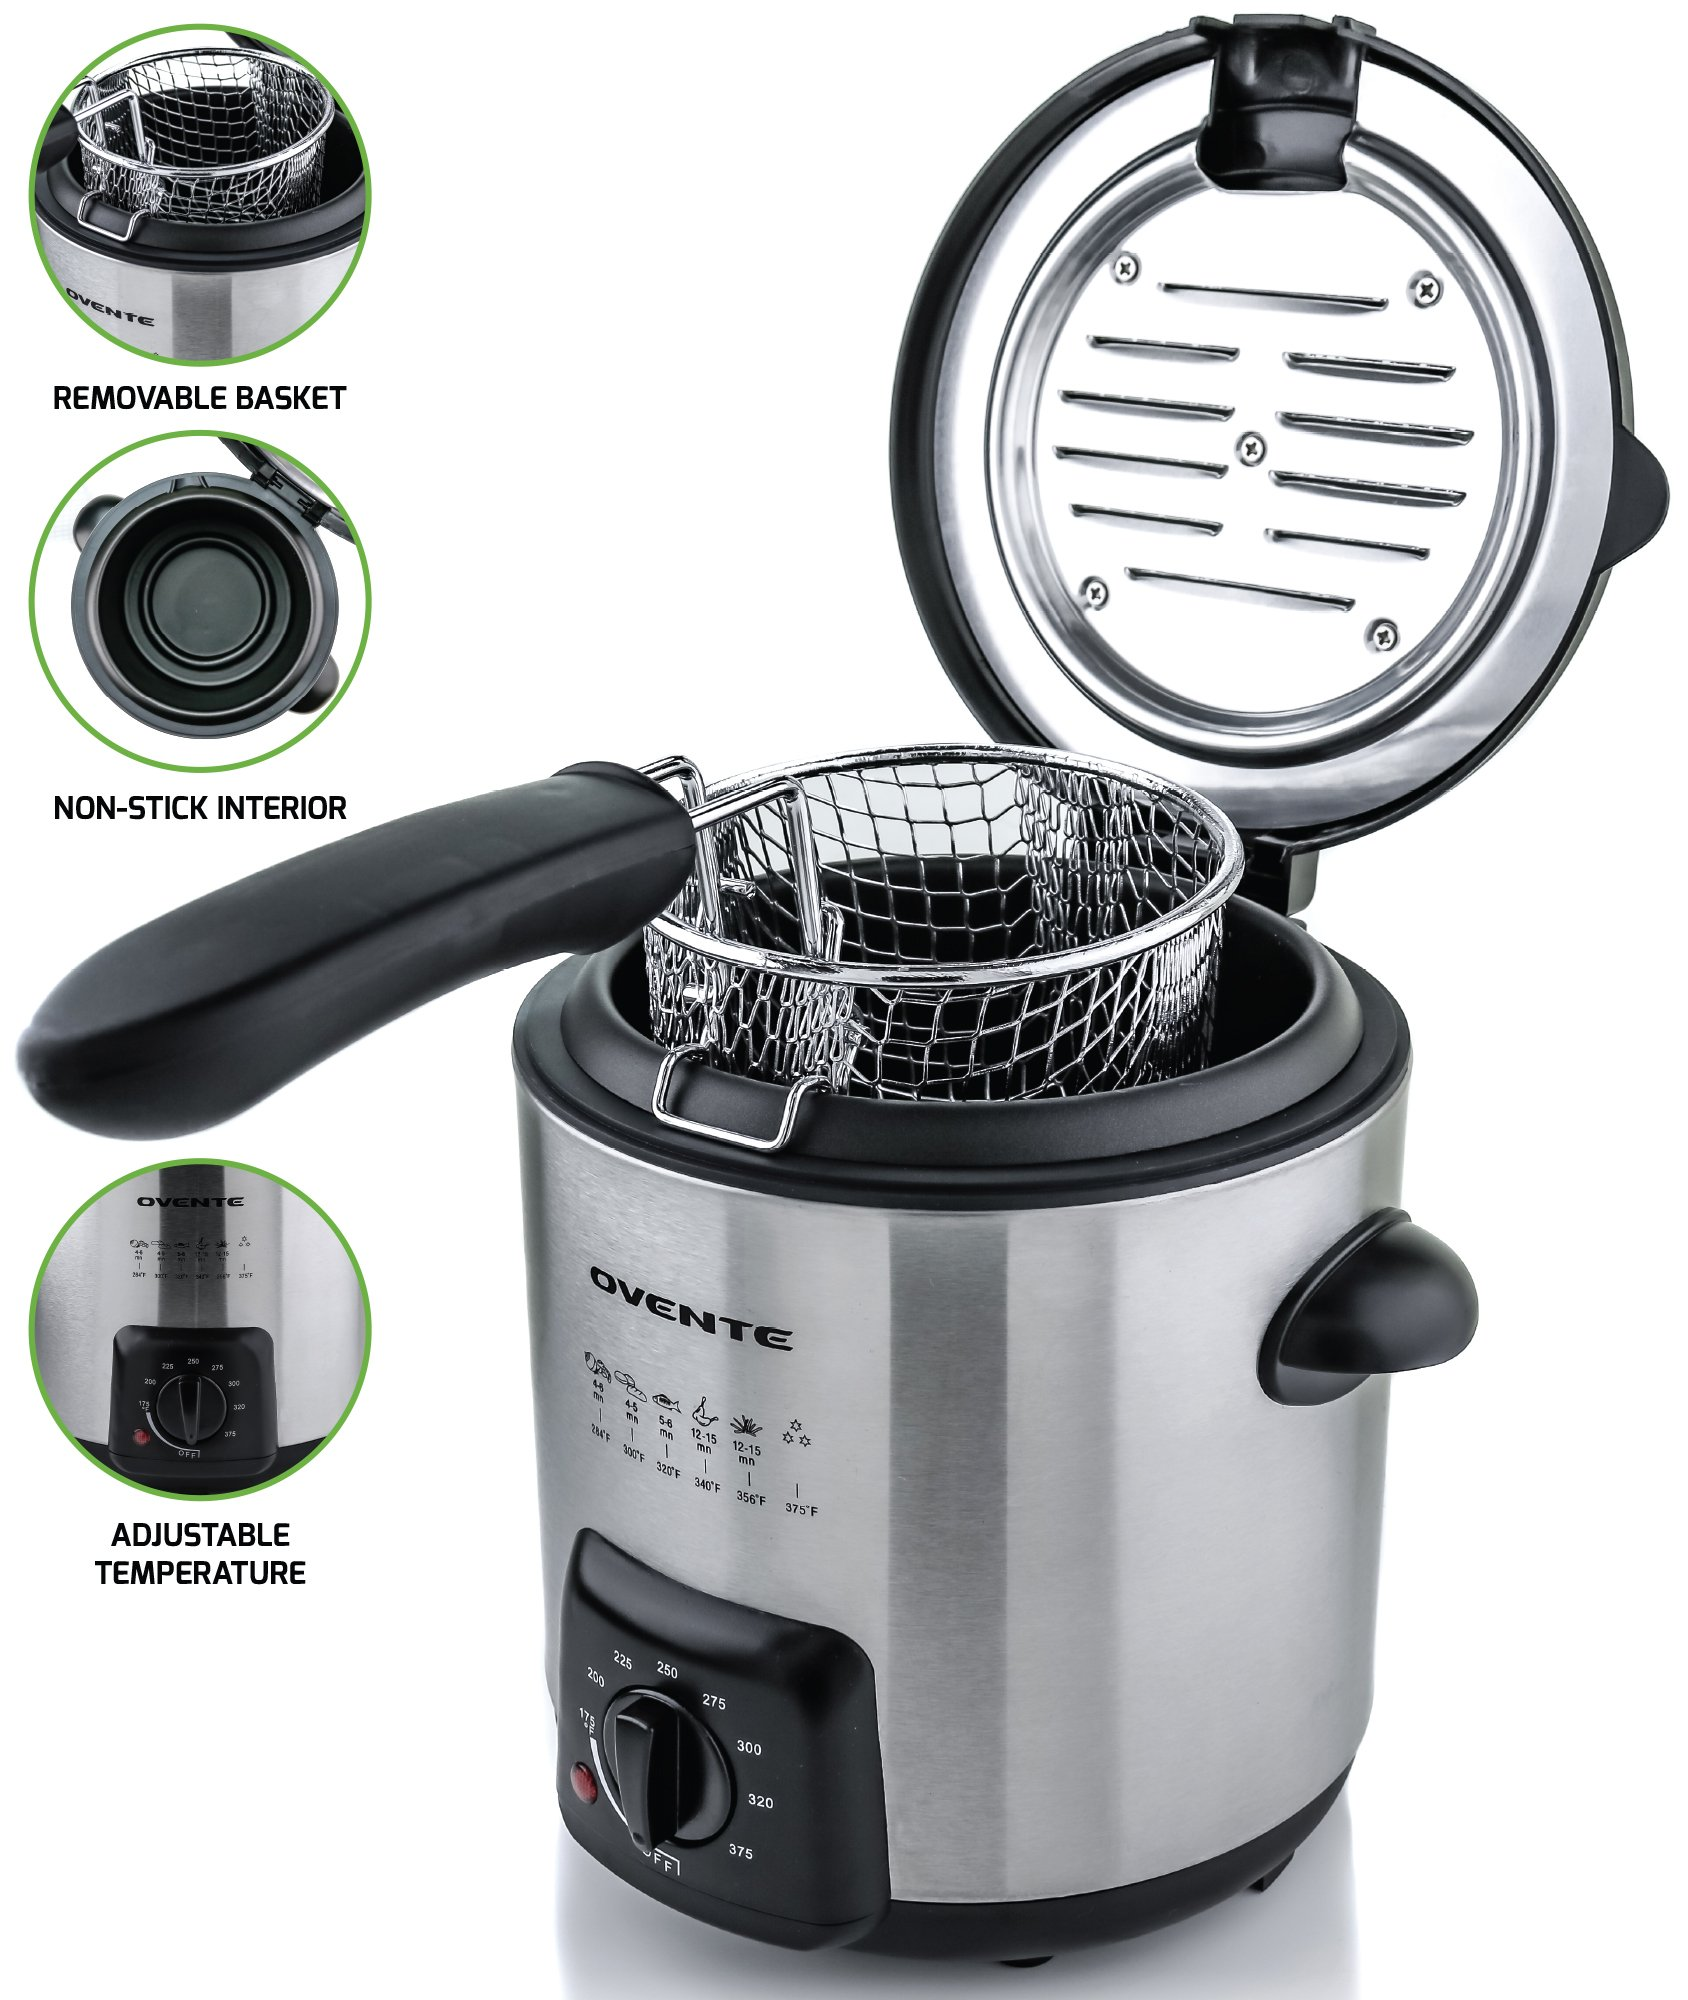 Ovente FDM1091BR Mini Deep Fryer with Removable Basket, Stainless Steel, Adjustable Temperature Control, Non-Stick Interior, Personal Size FDM1, Nickel Brushed